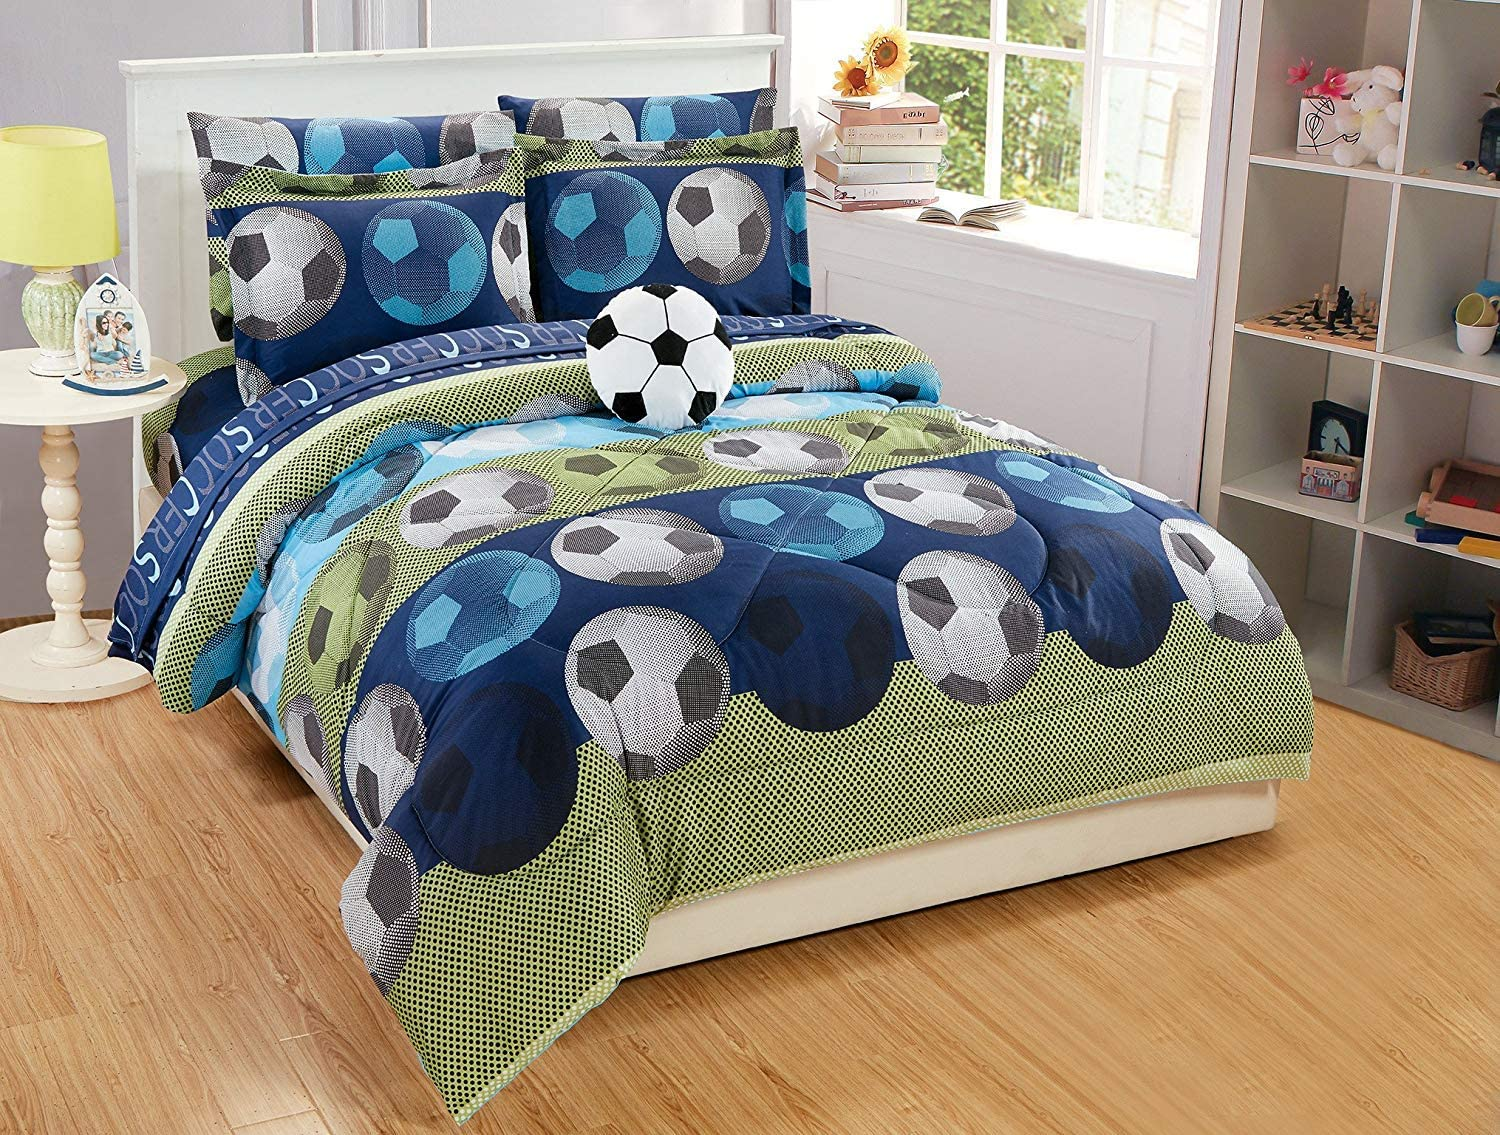 Elegant Home Blue Green Soccer Design 8 Piece Comforter Bedding Set for Boys/Kids Bed in a Bag with Sheet Set & Decorative Toy Pillow # Soccer (Full Size)